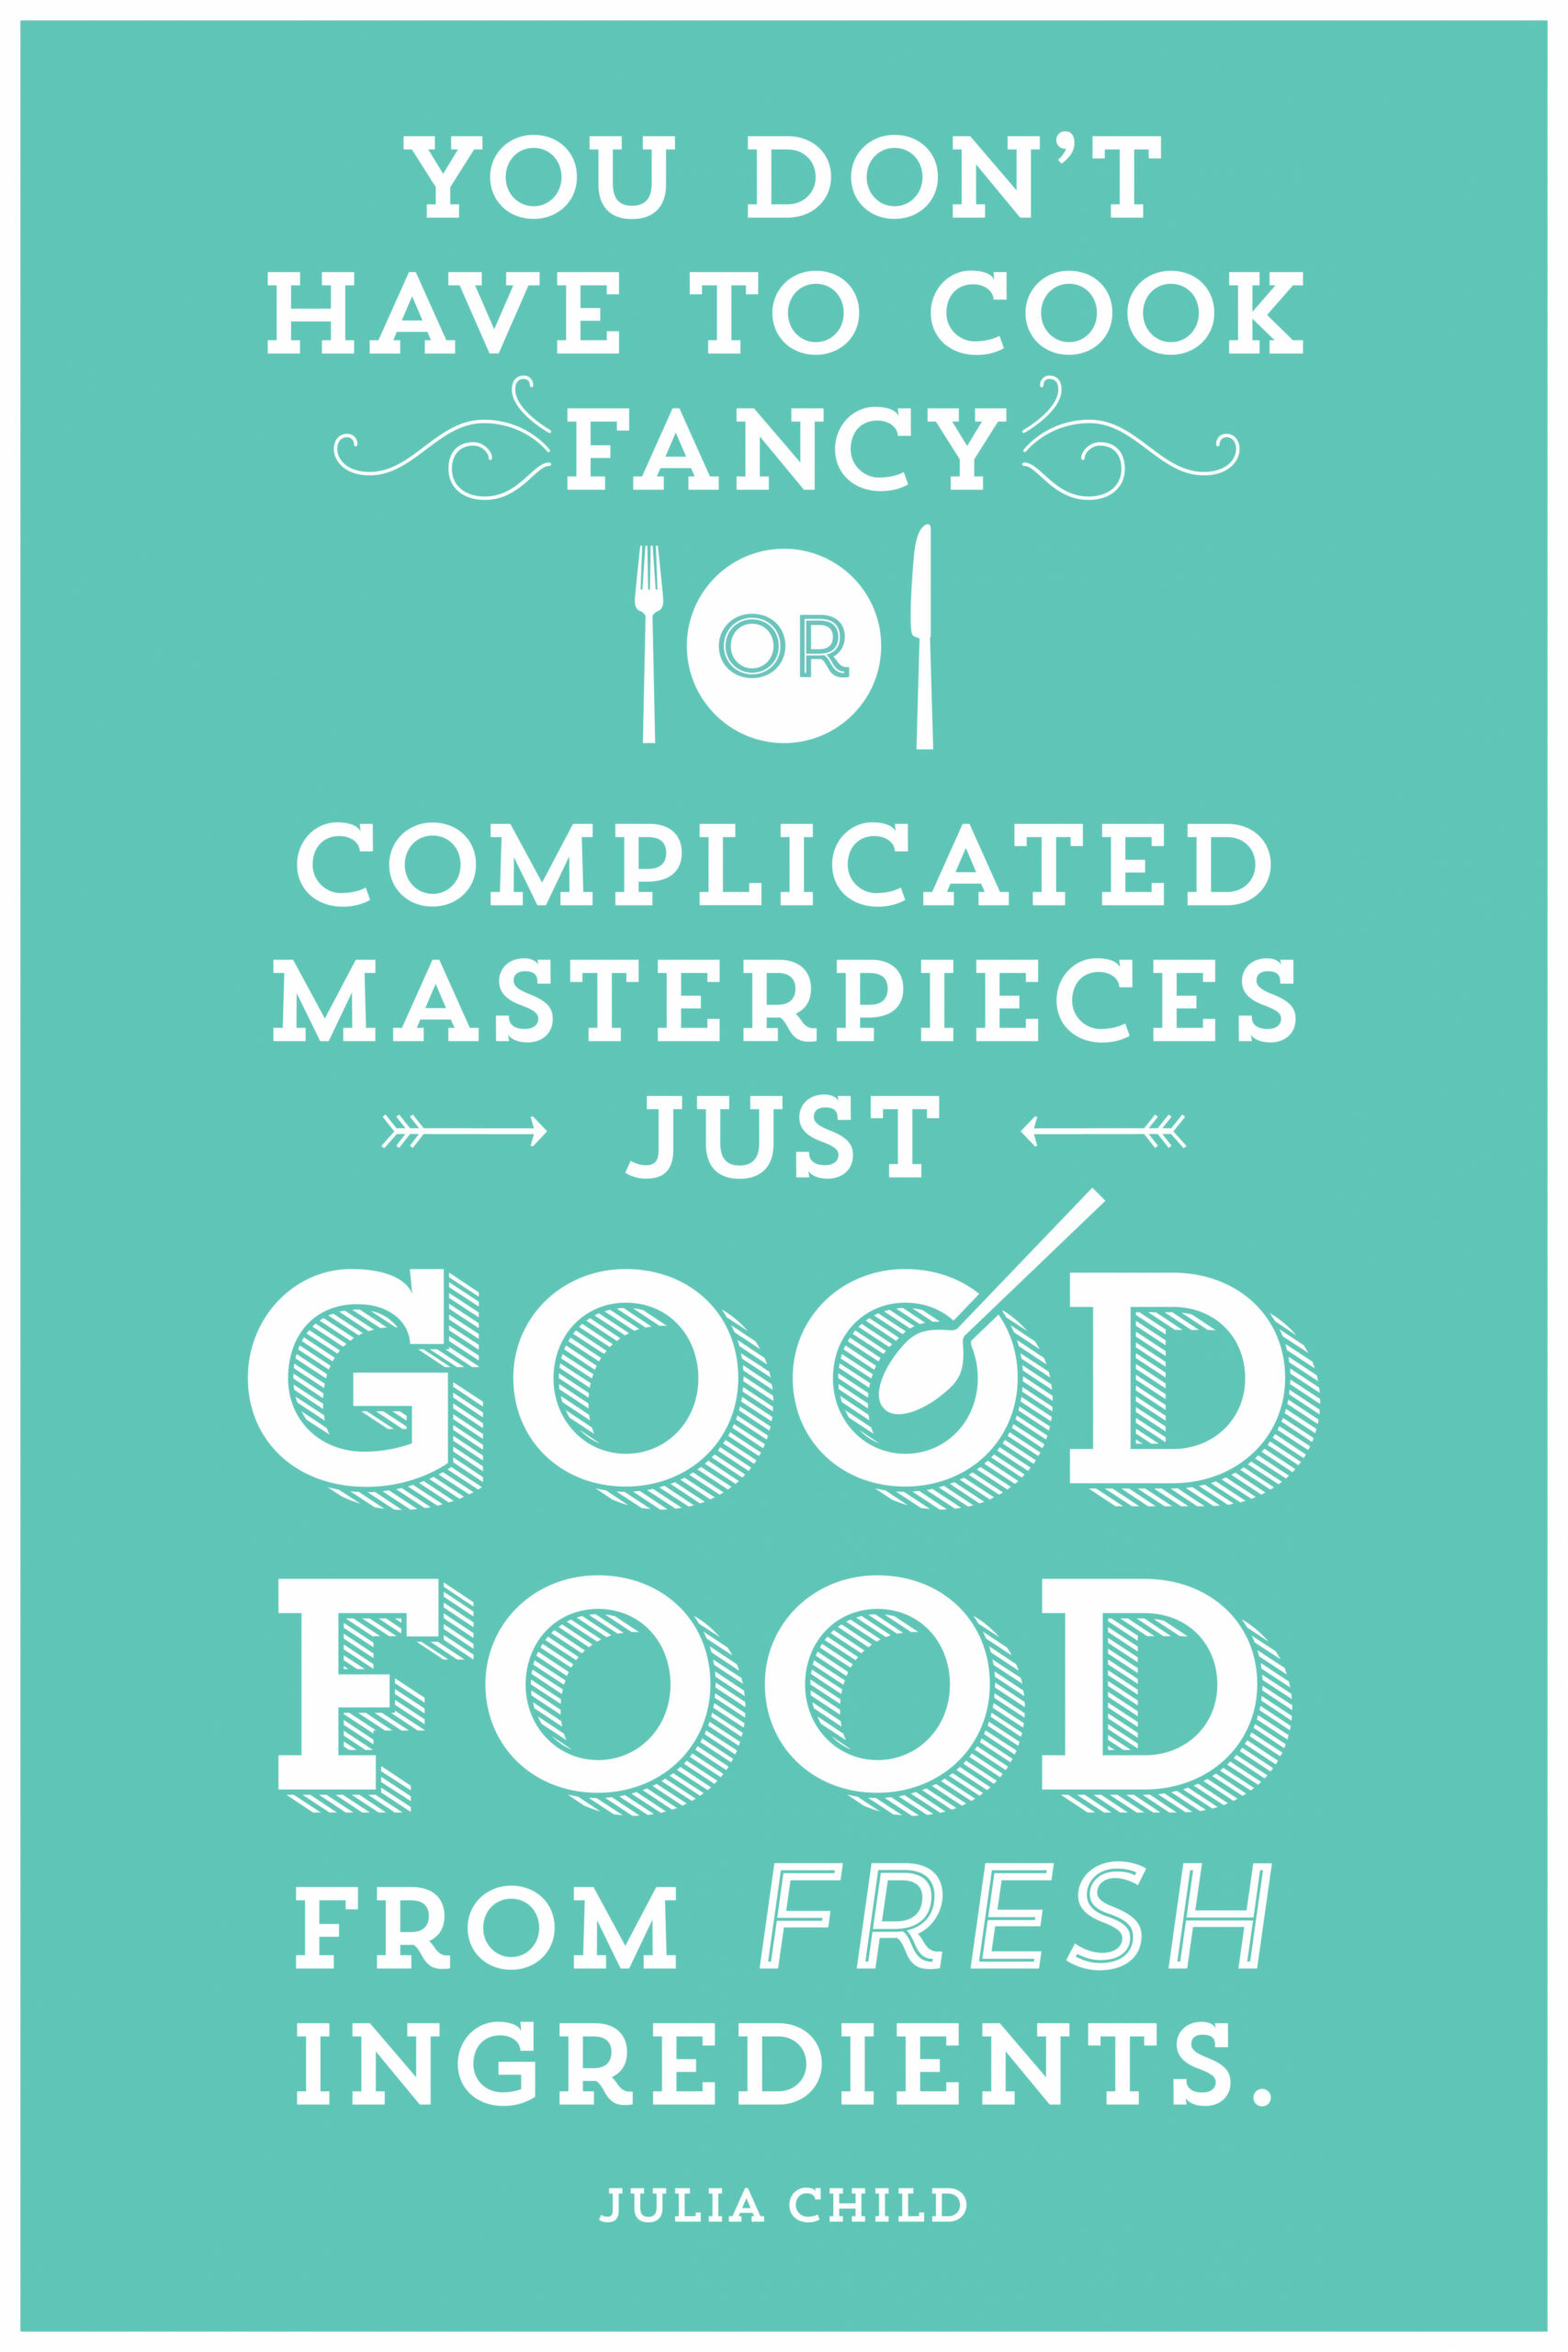 Quotes about Meals (15 quotes) - healthy recipes quotes